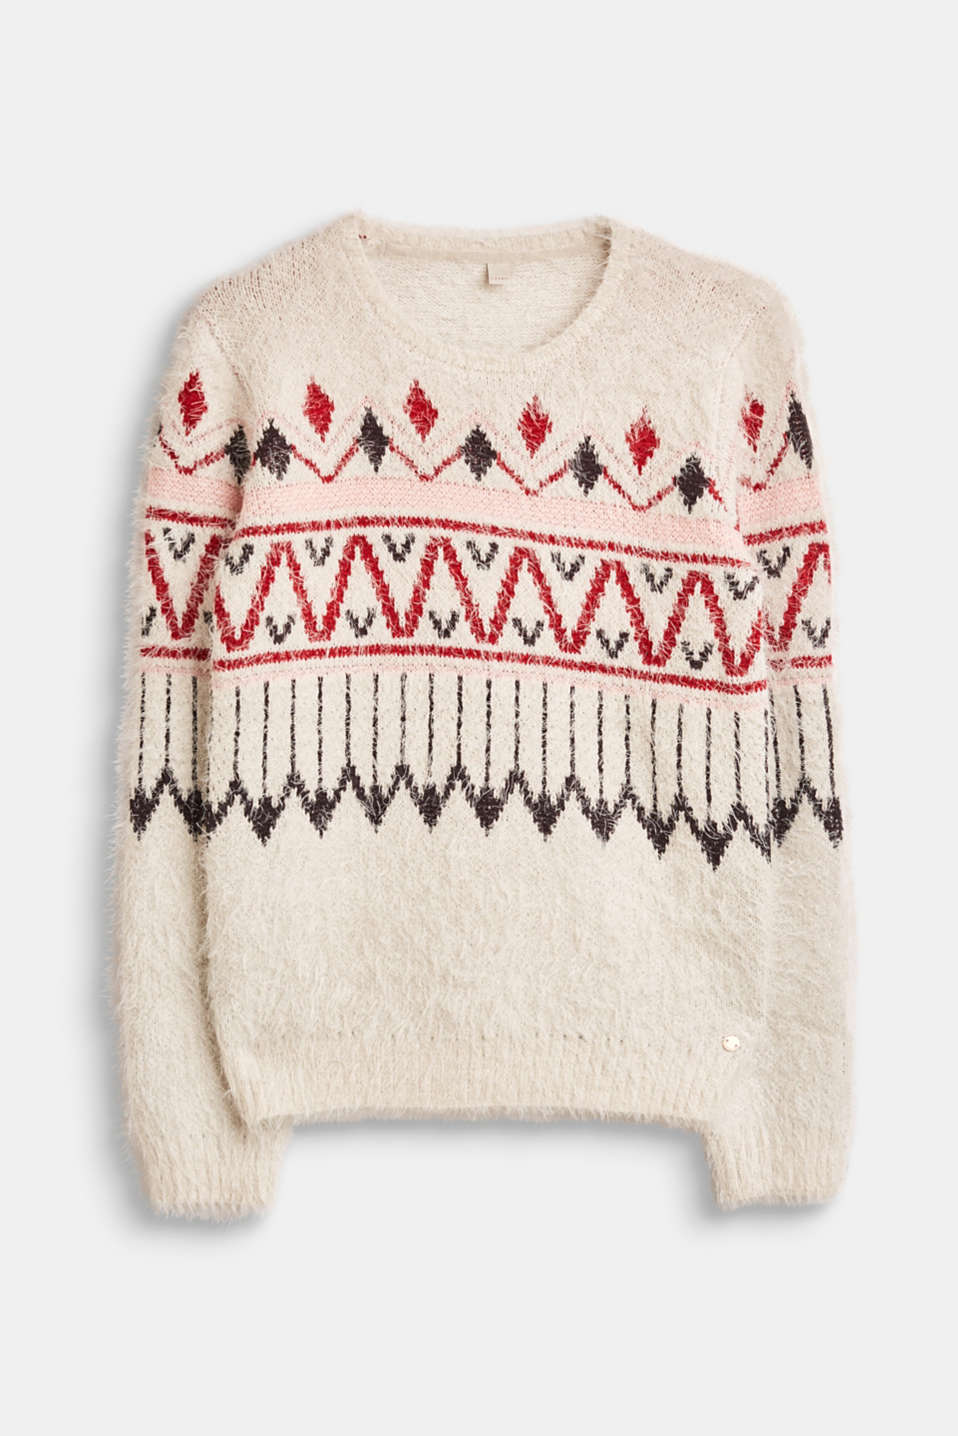 Esprit - Intarsia jumper made of soft novelty yarn